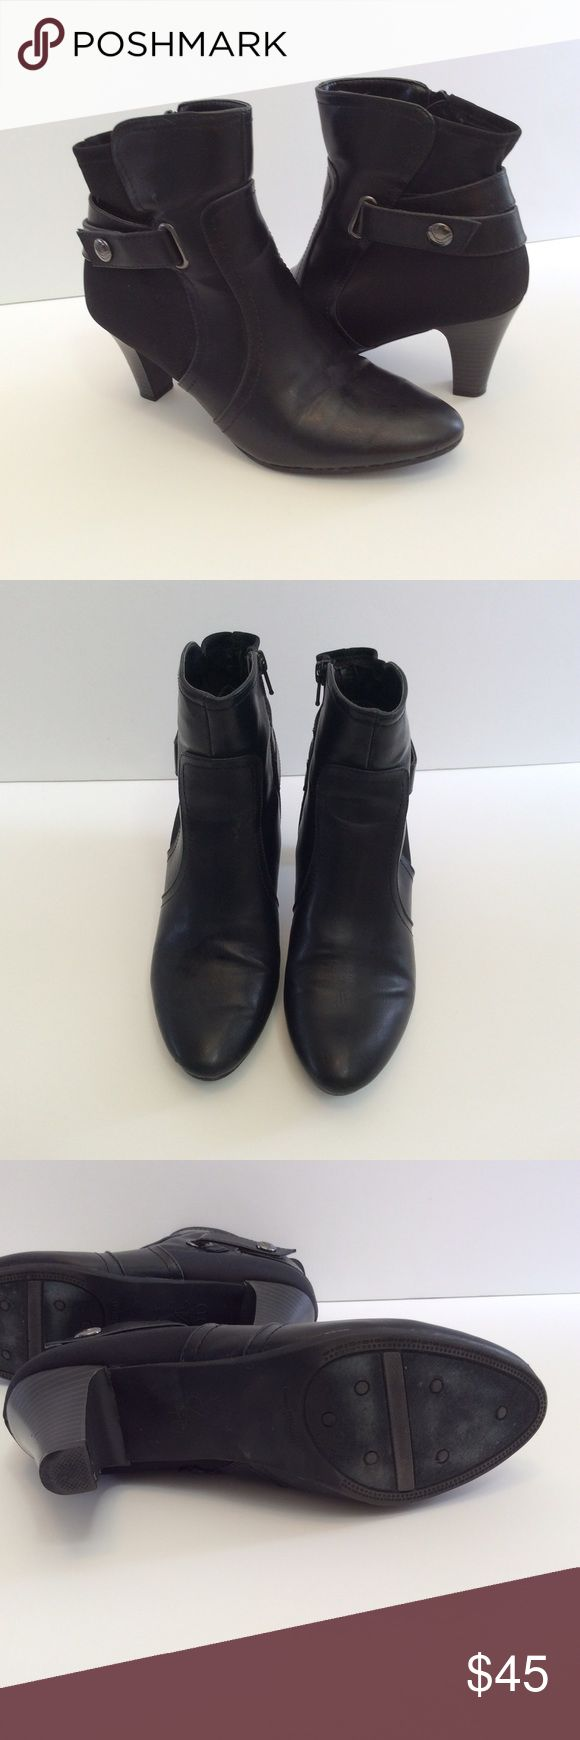 Life Stride Heeled Ankle Booties Cute and comfy heeled ankle booties by Life Stride. Size 8.5 Life Stride Shoes Ankle Boots & Booties